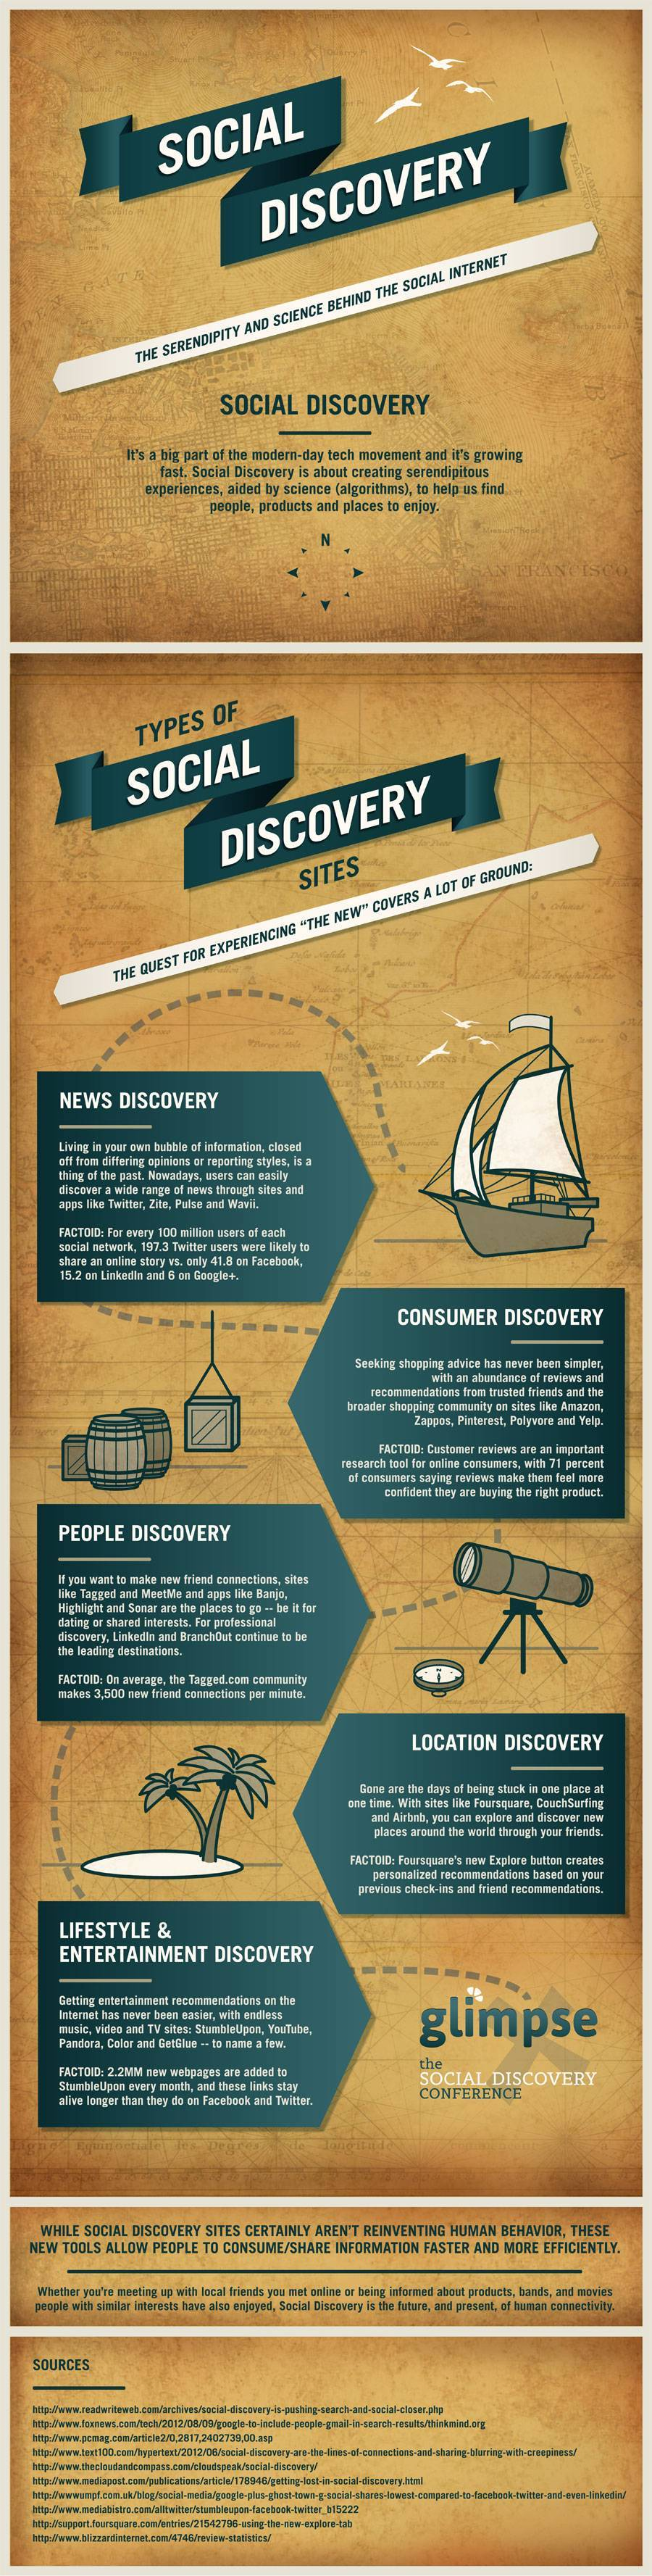 social-discovery-networking-tools-infographic